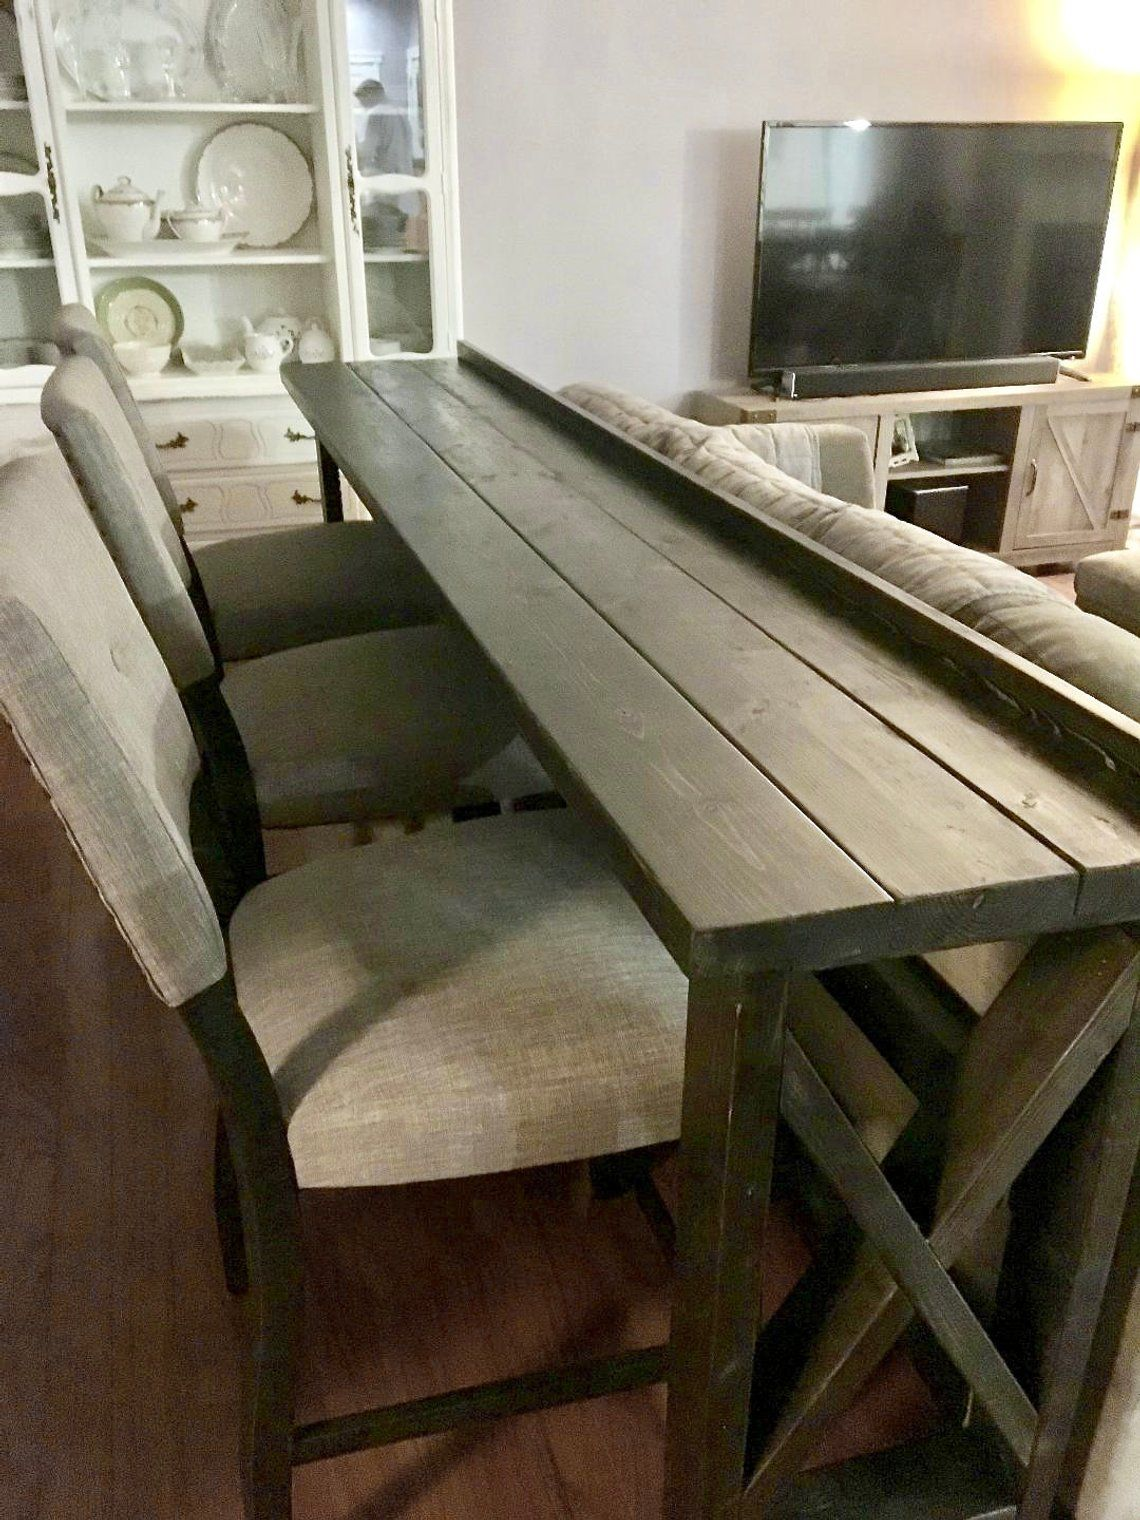 Sofa Bar Table Sold But We Will Be Happy To Build You A Custom Piece Diy Home Decor Projects Home Diy Sofa Table